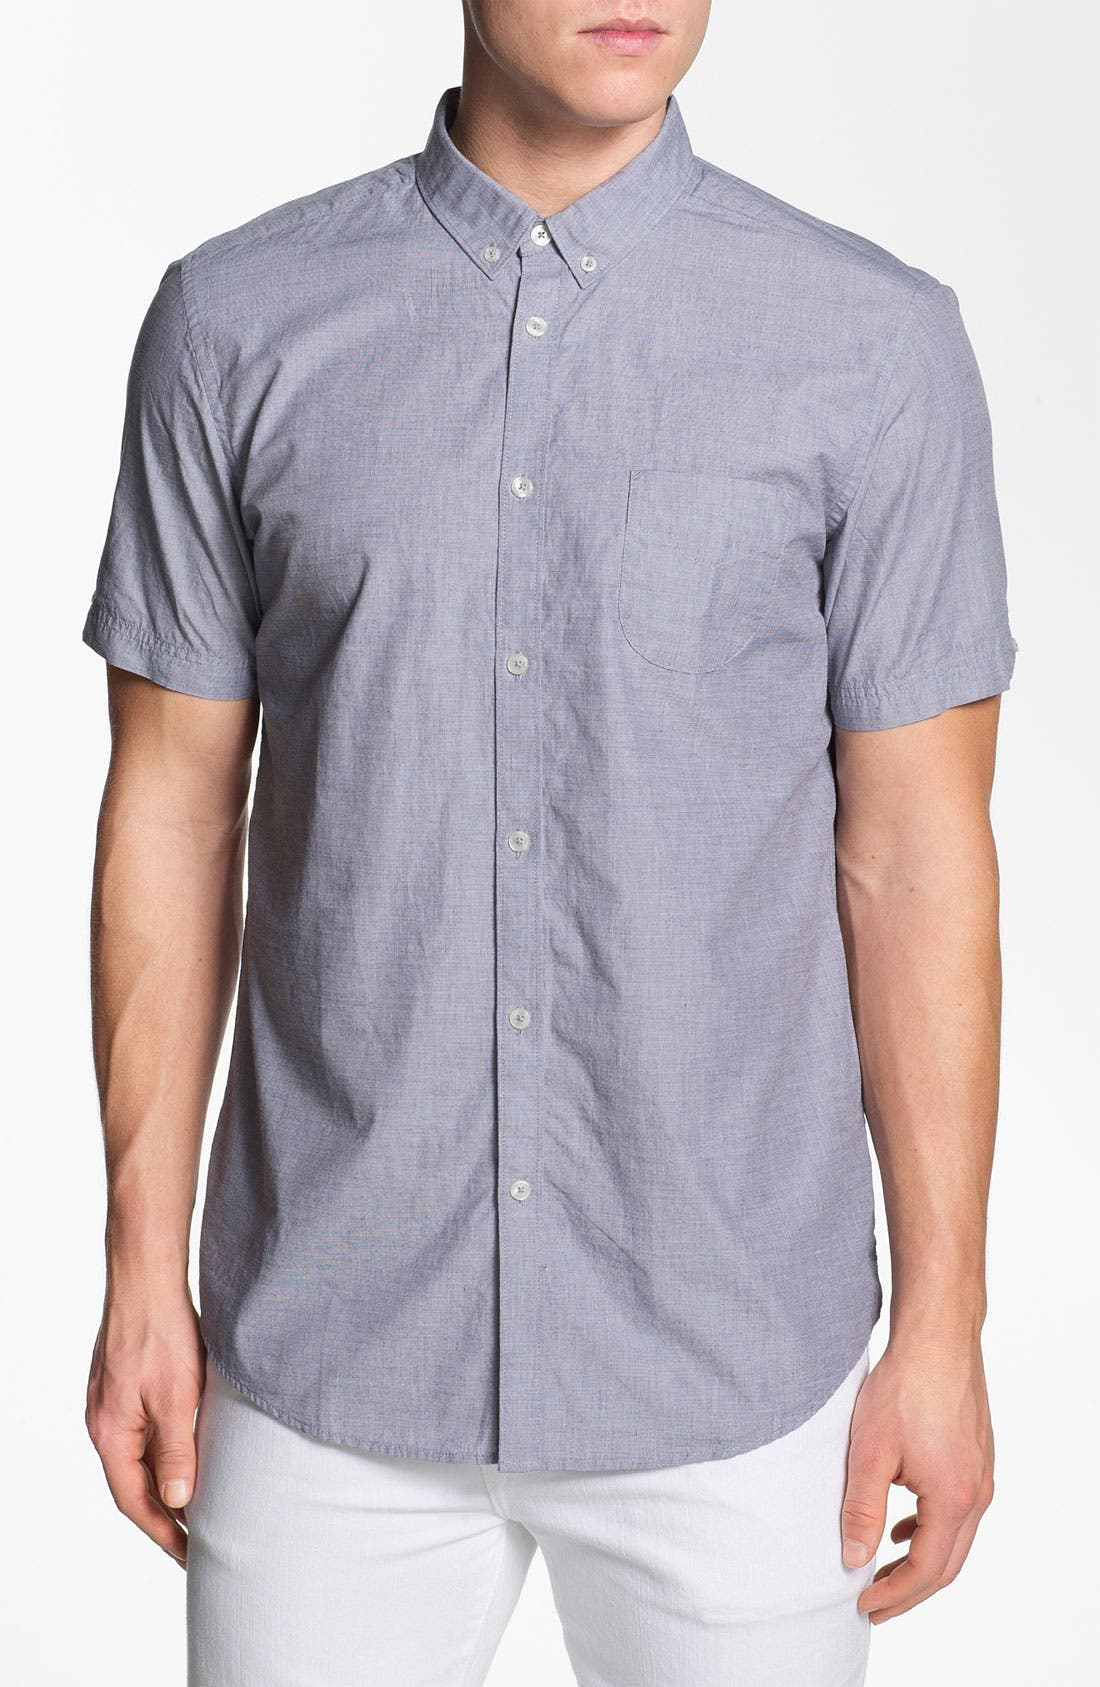 Alternate Image 1 Selected - Ben Sherman End on End Woven Shirt